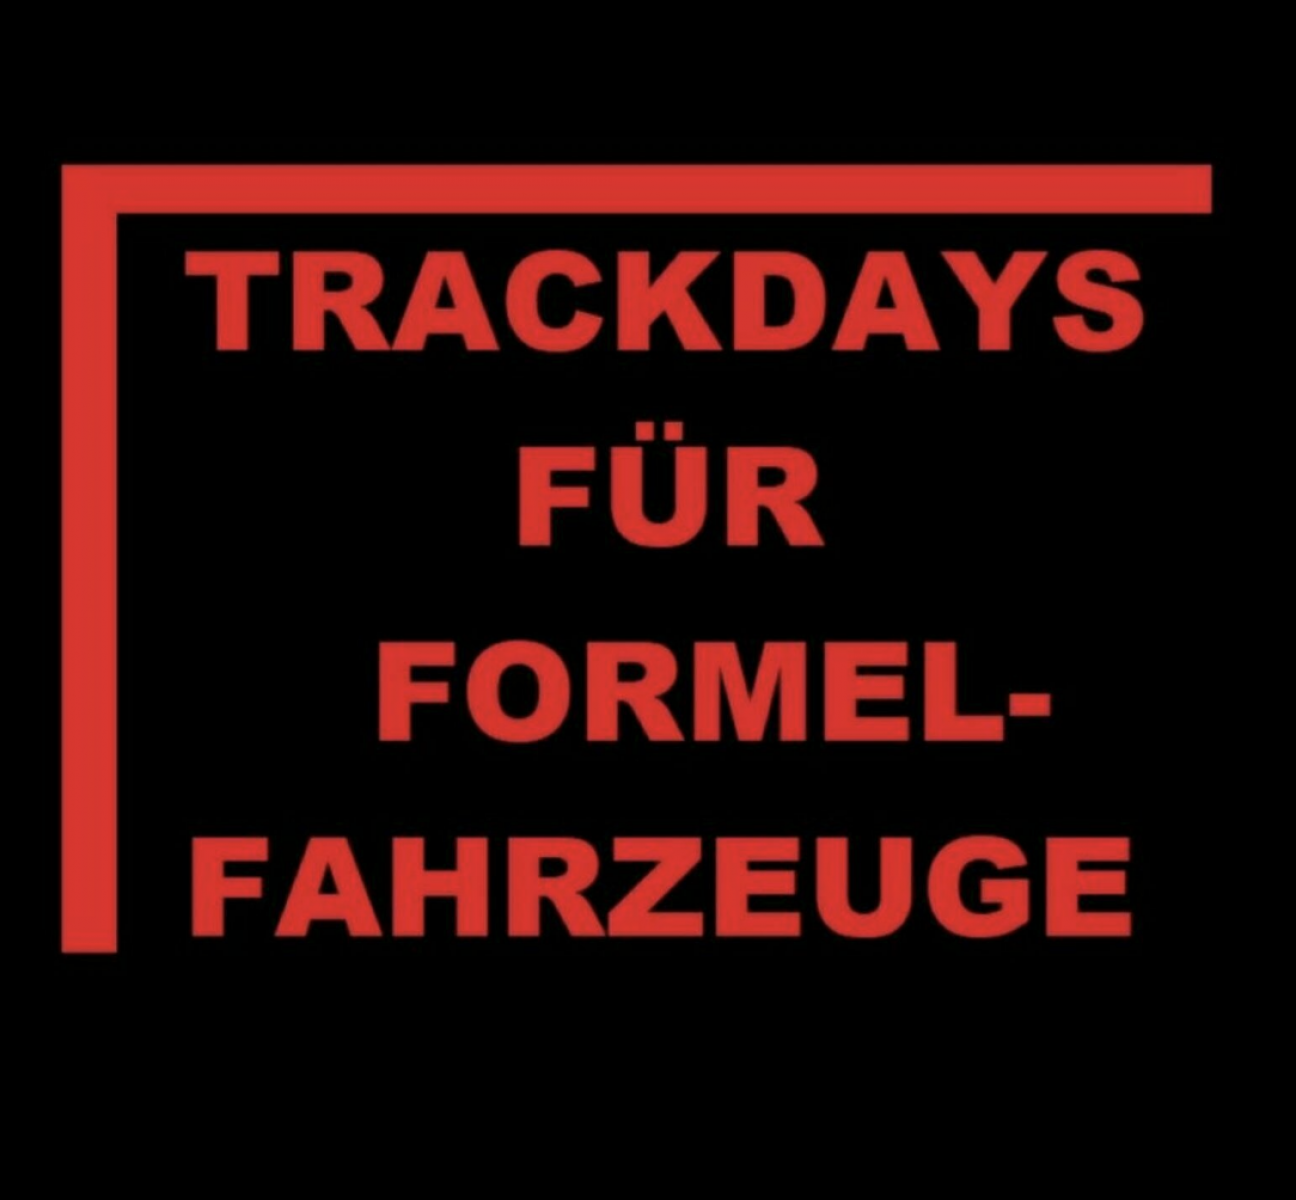 Track days for racing vehicles on August 29th 2020 - 1